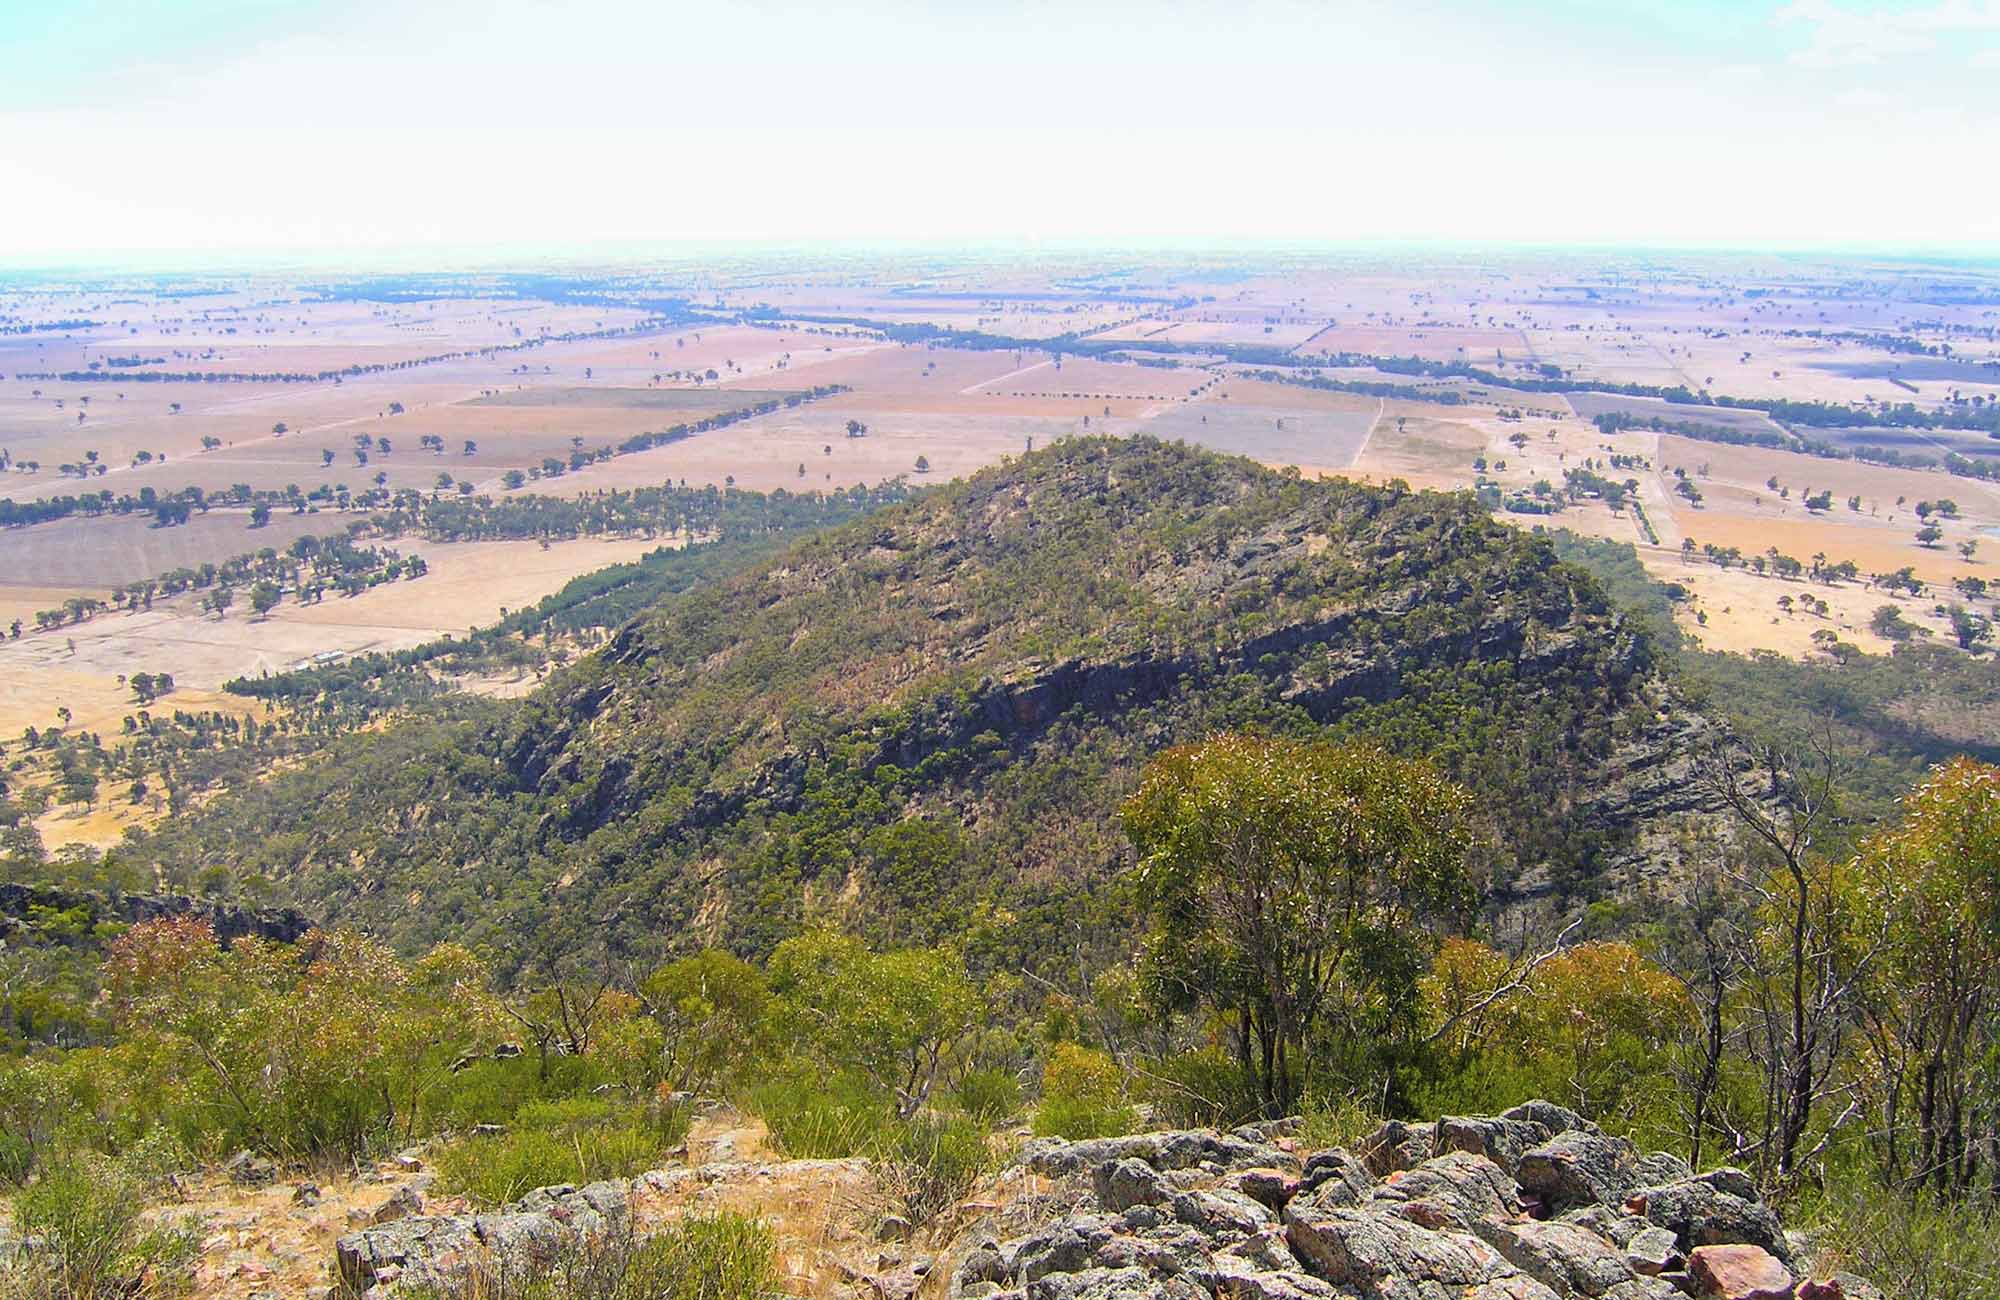 The Rock Nature Reserve - Kengal Aboriginal Place. Photo: C Killick